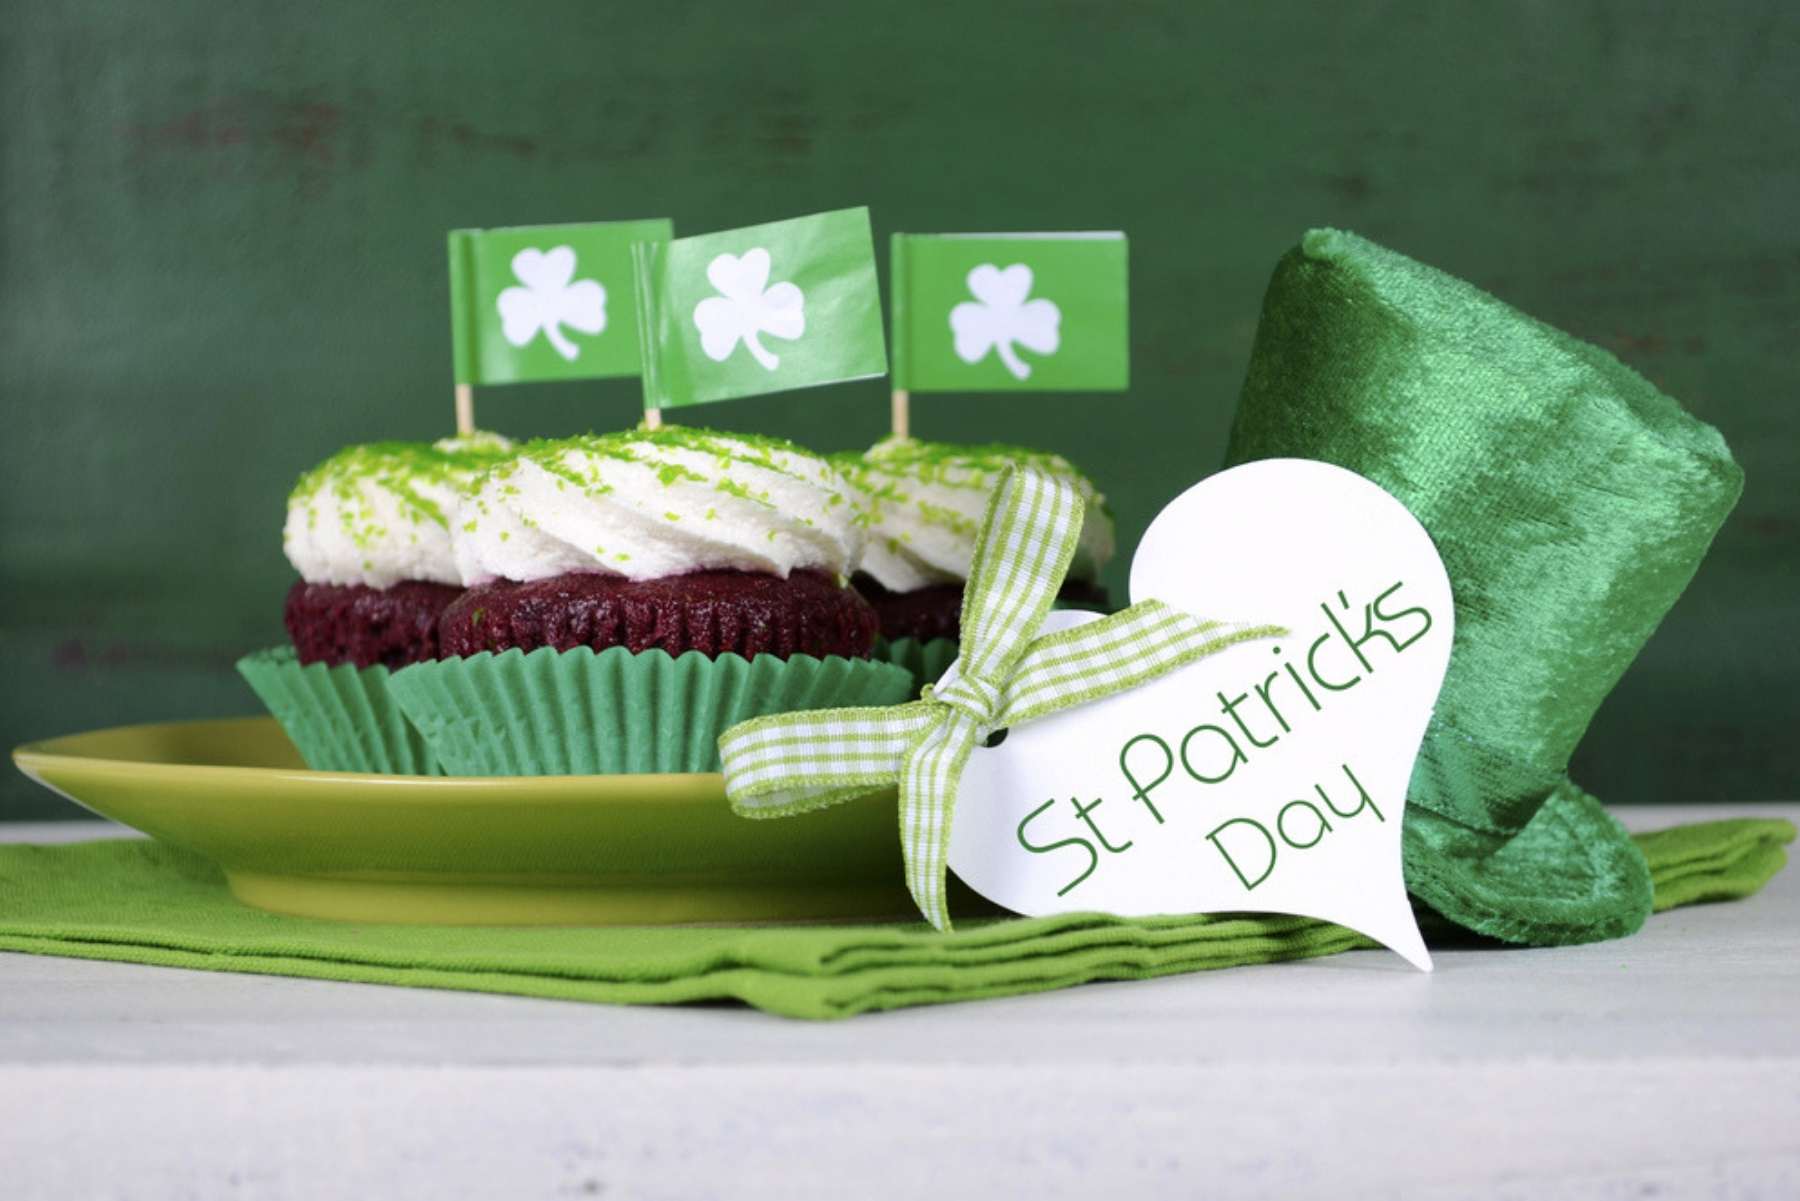 5 Amazing Brand Activations for St. Patrick's Day